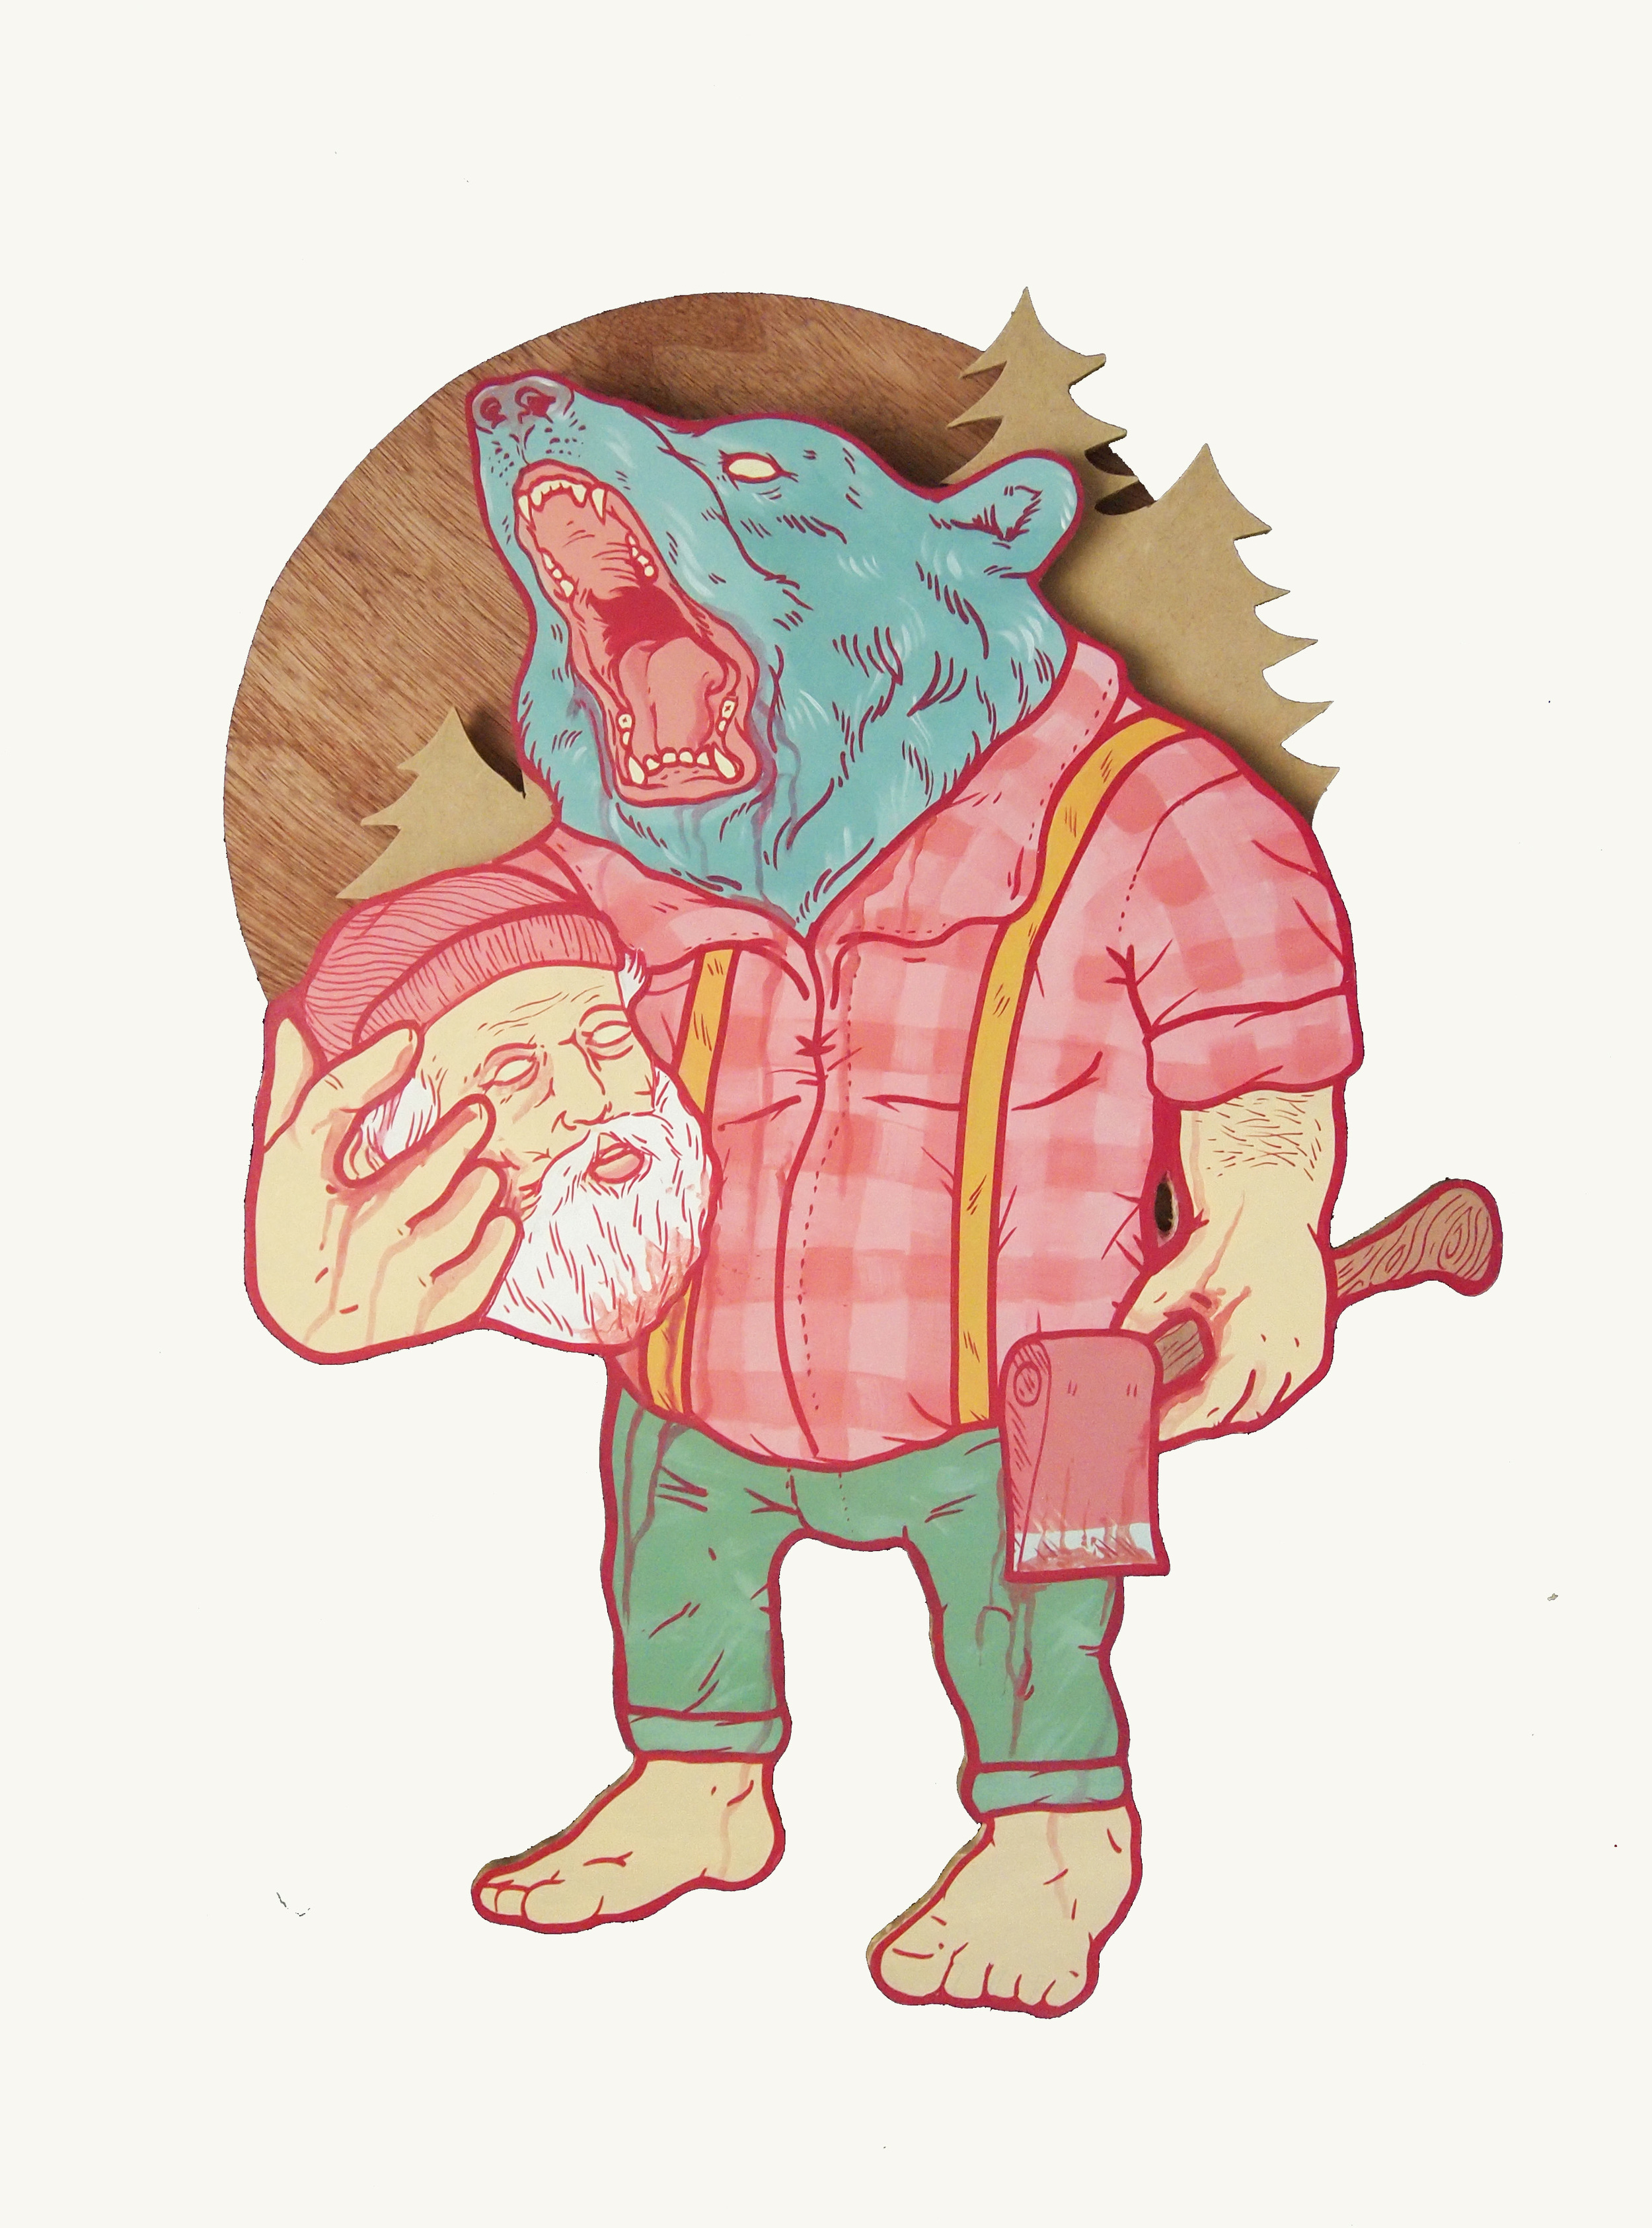 Revenge on Paul Bunyan , 2012 [private collection Brooklyn, NY] Acrylic on Wood 24 x 18 in.